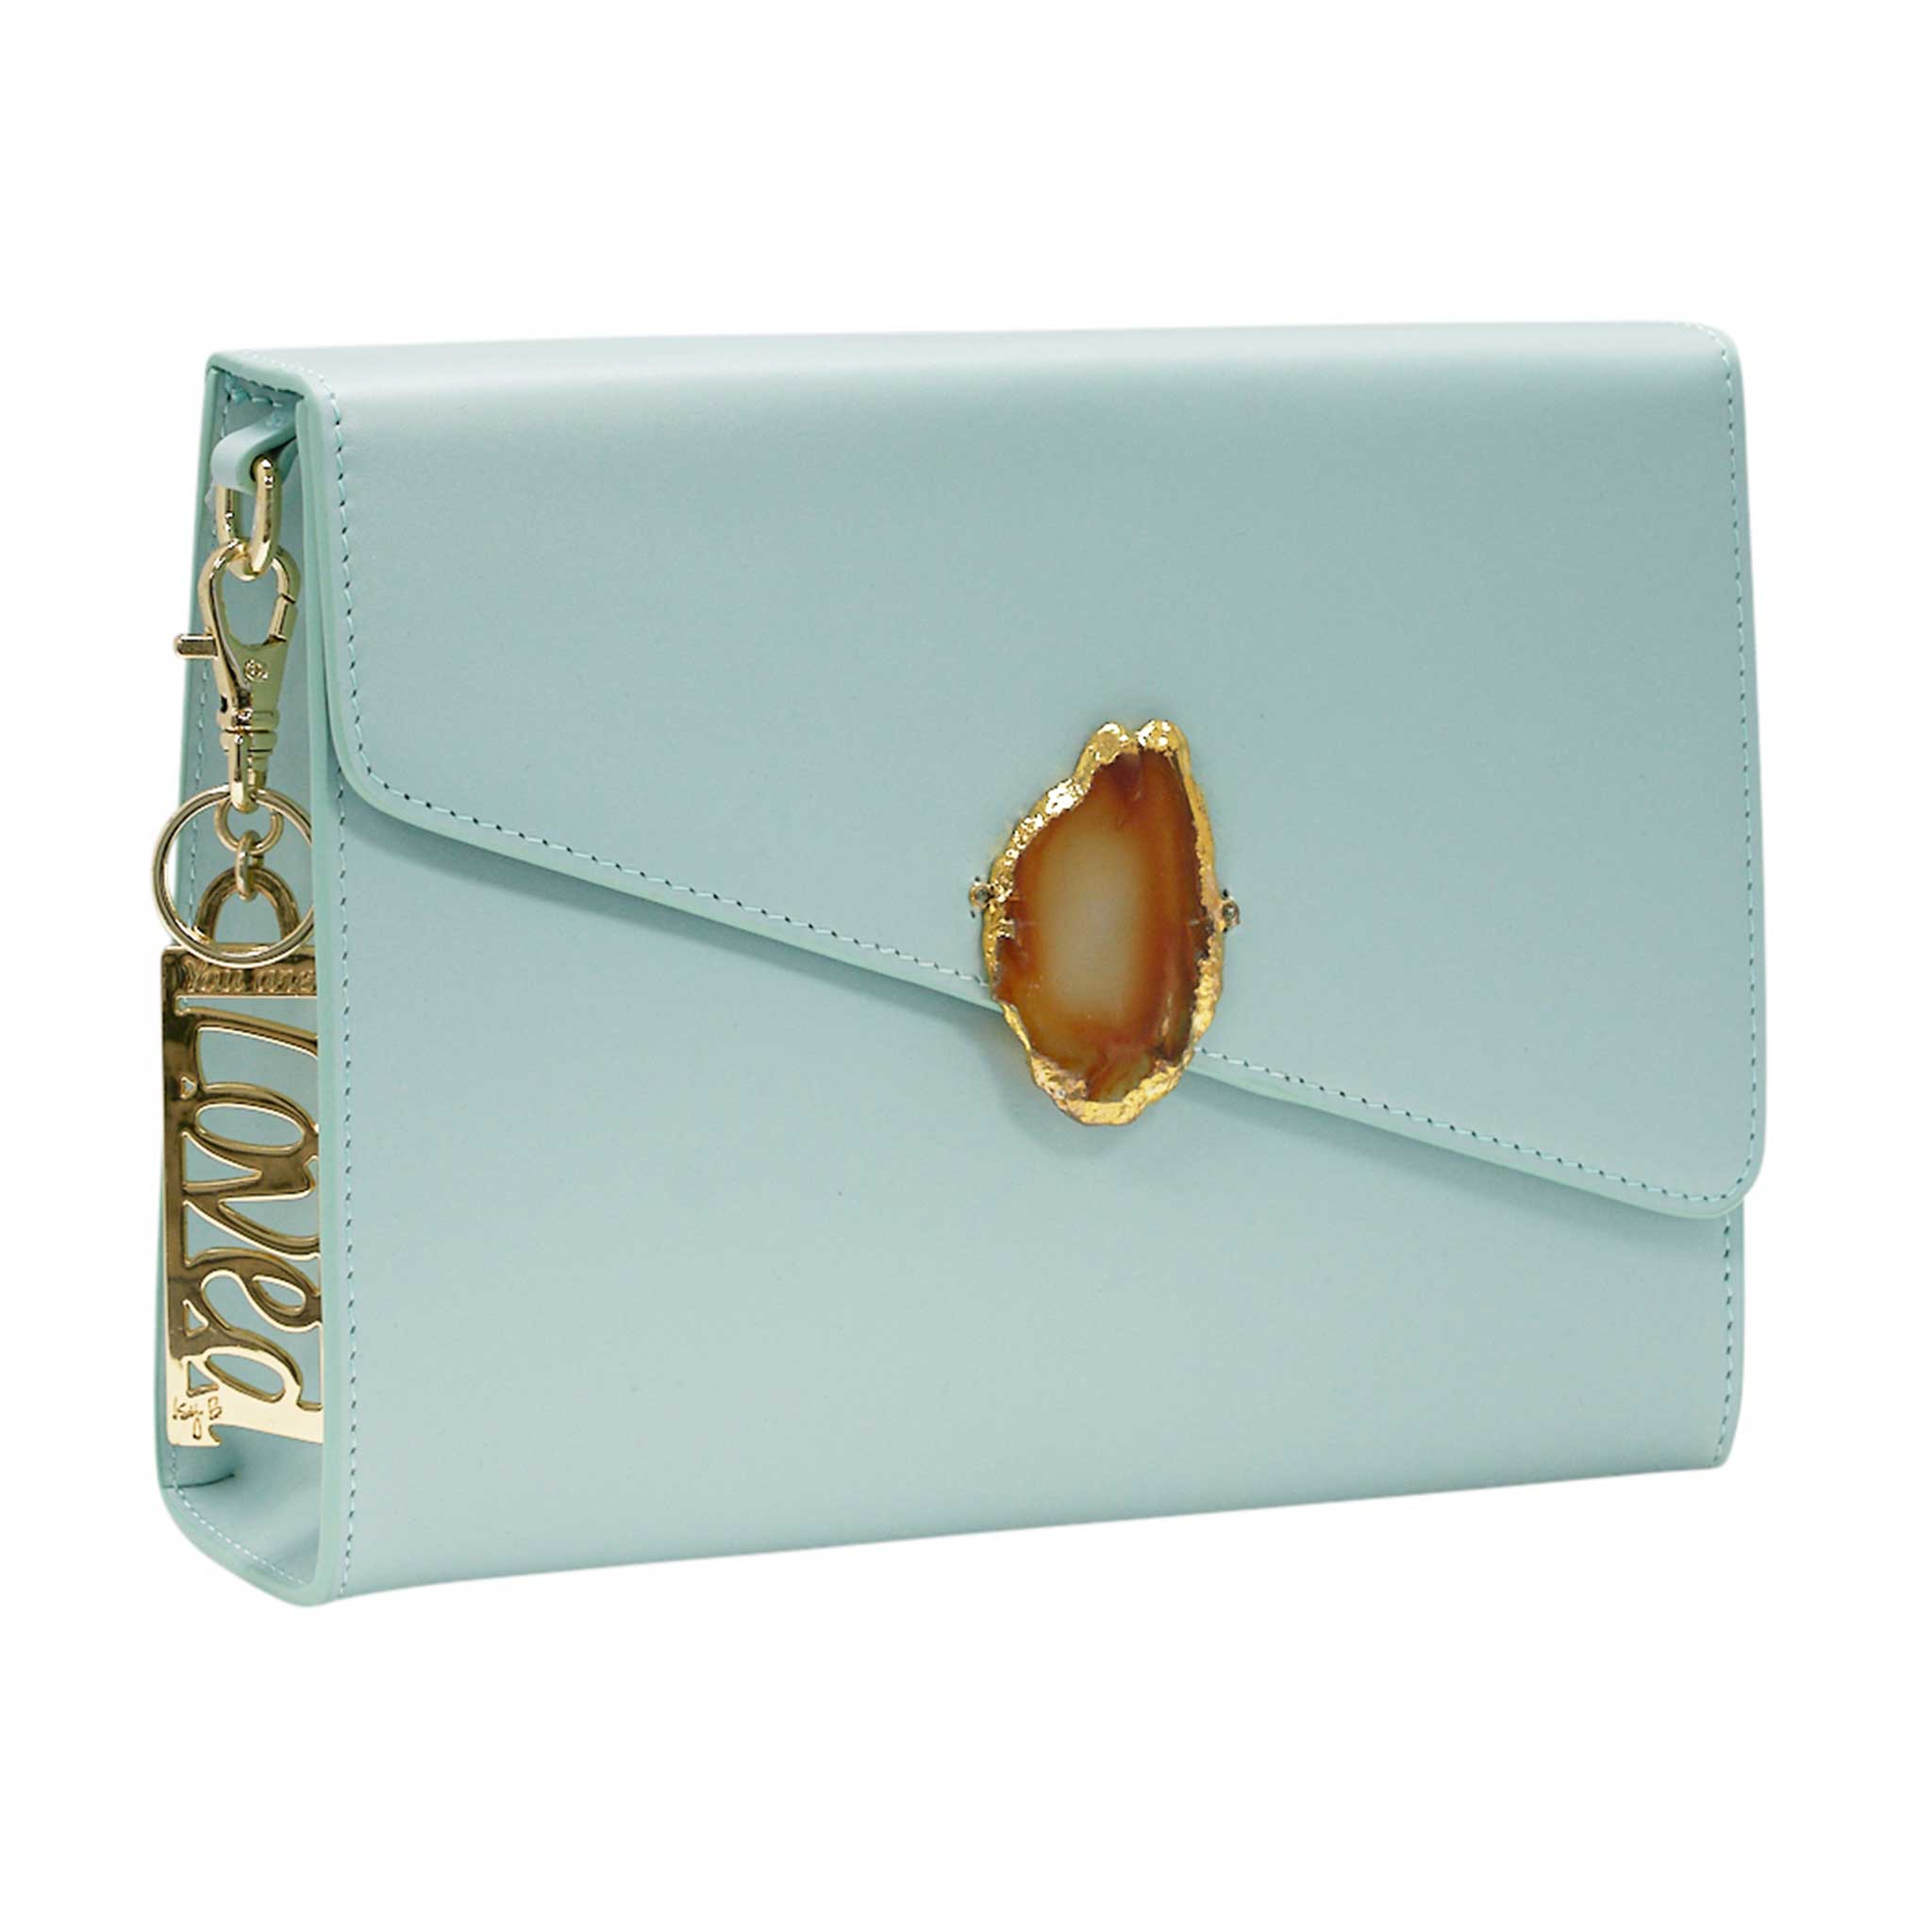 LOVED BAG - MOONSTONE WHITE LEATHER WITH YELLOW AGATE - 1.02.001.44